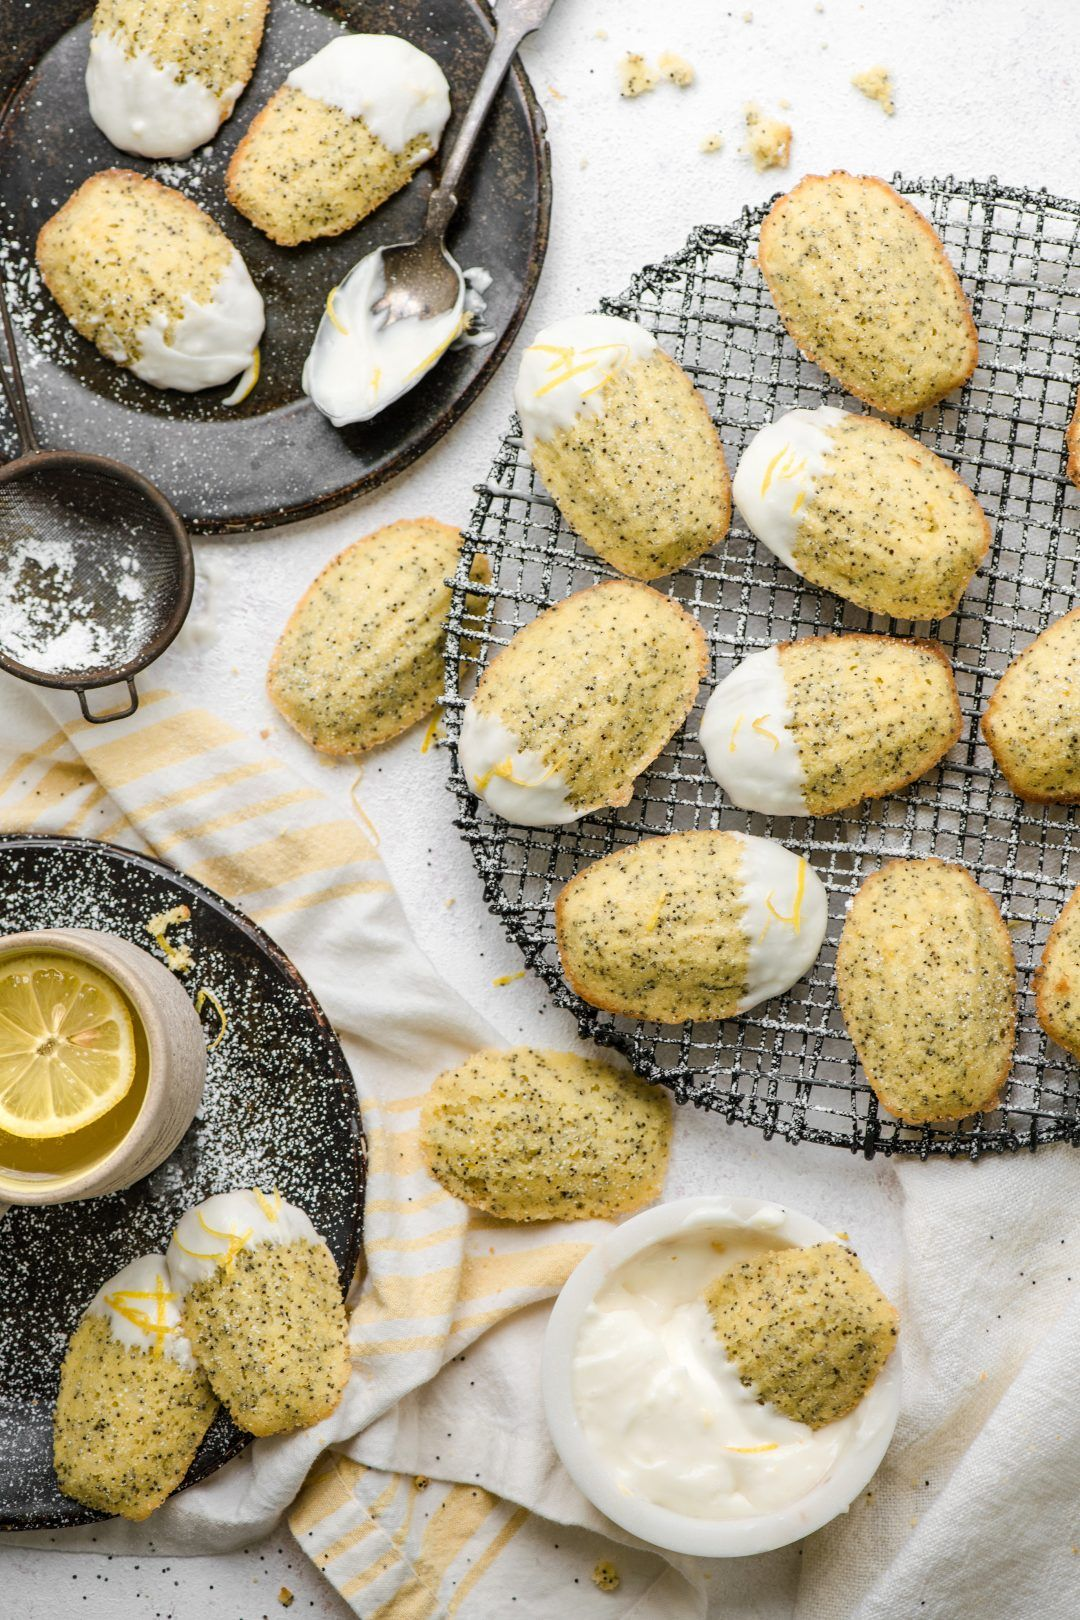 Lemon Poppyseed French Madeleines | Two Cups Flour #lemoncreamcheesefrosting